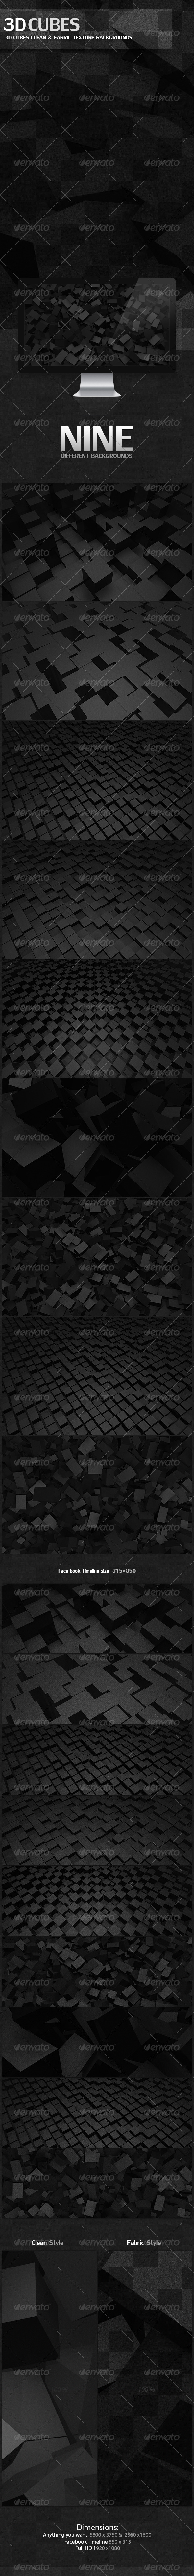 3d-Cubes-Clean-Fabric-Texture-Backgrounds-wallpaper-wp3801254